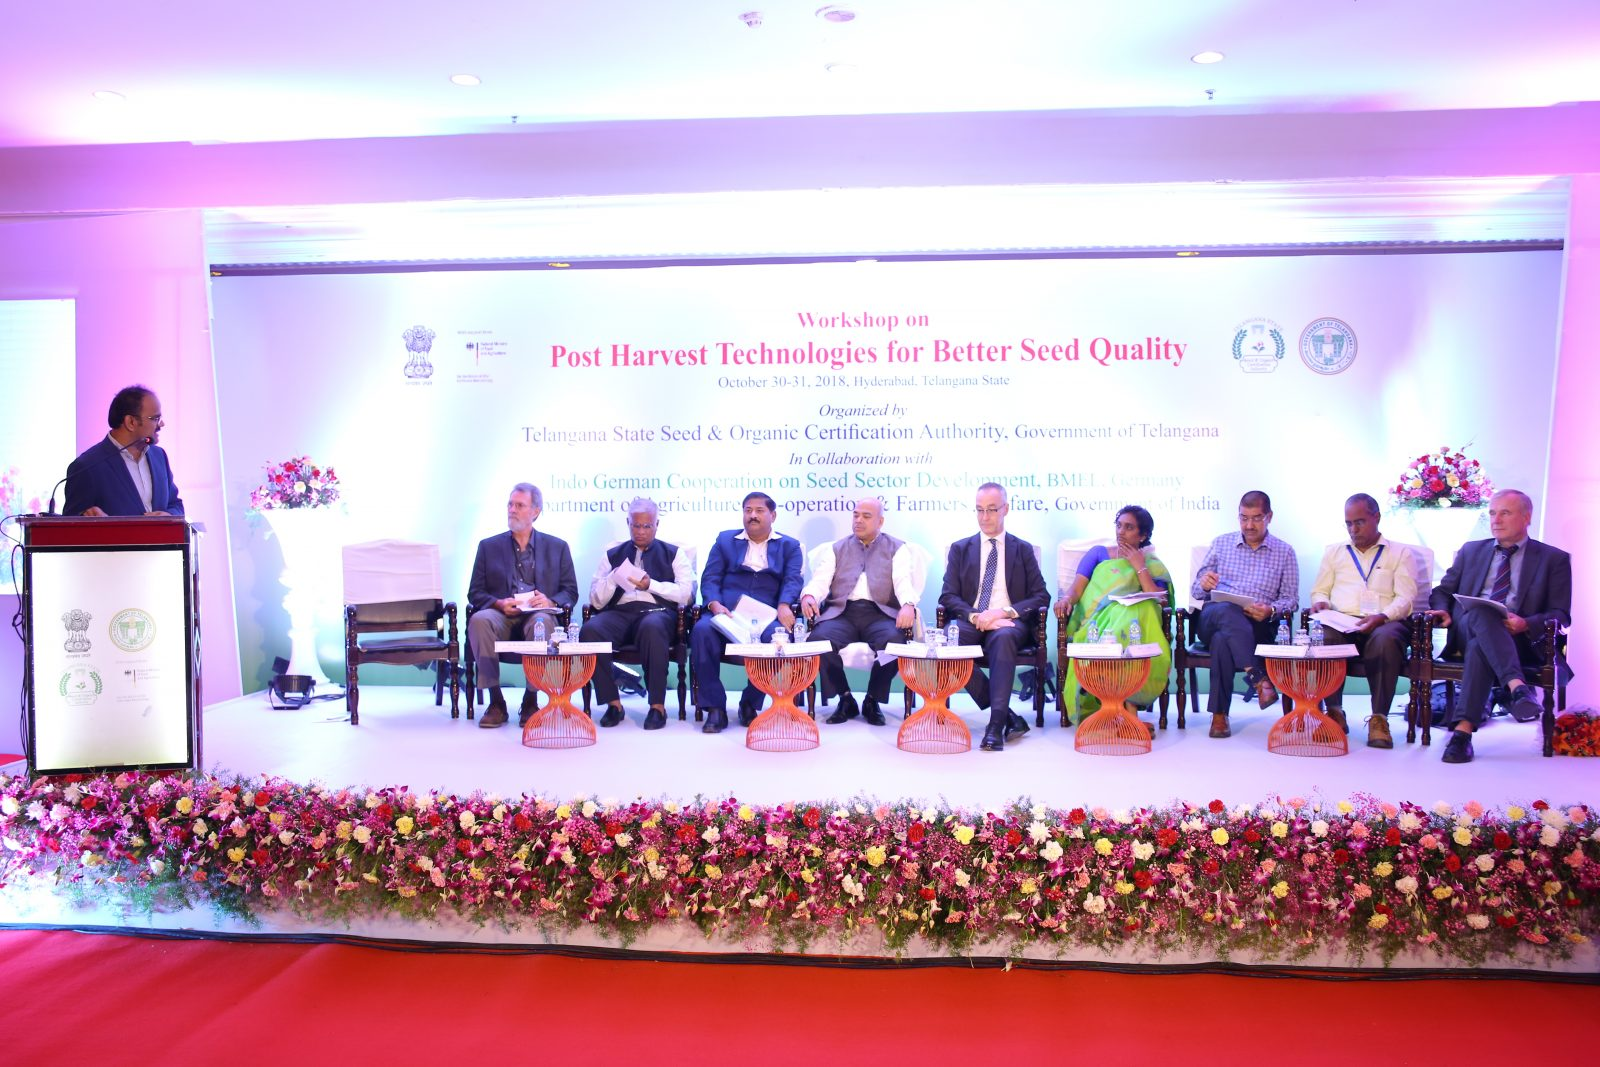 Workshop on post-harvest technologies for better seed quality in Hyderabad